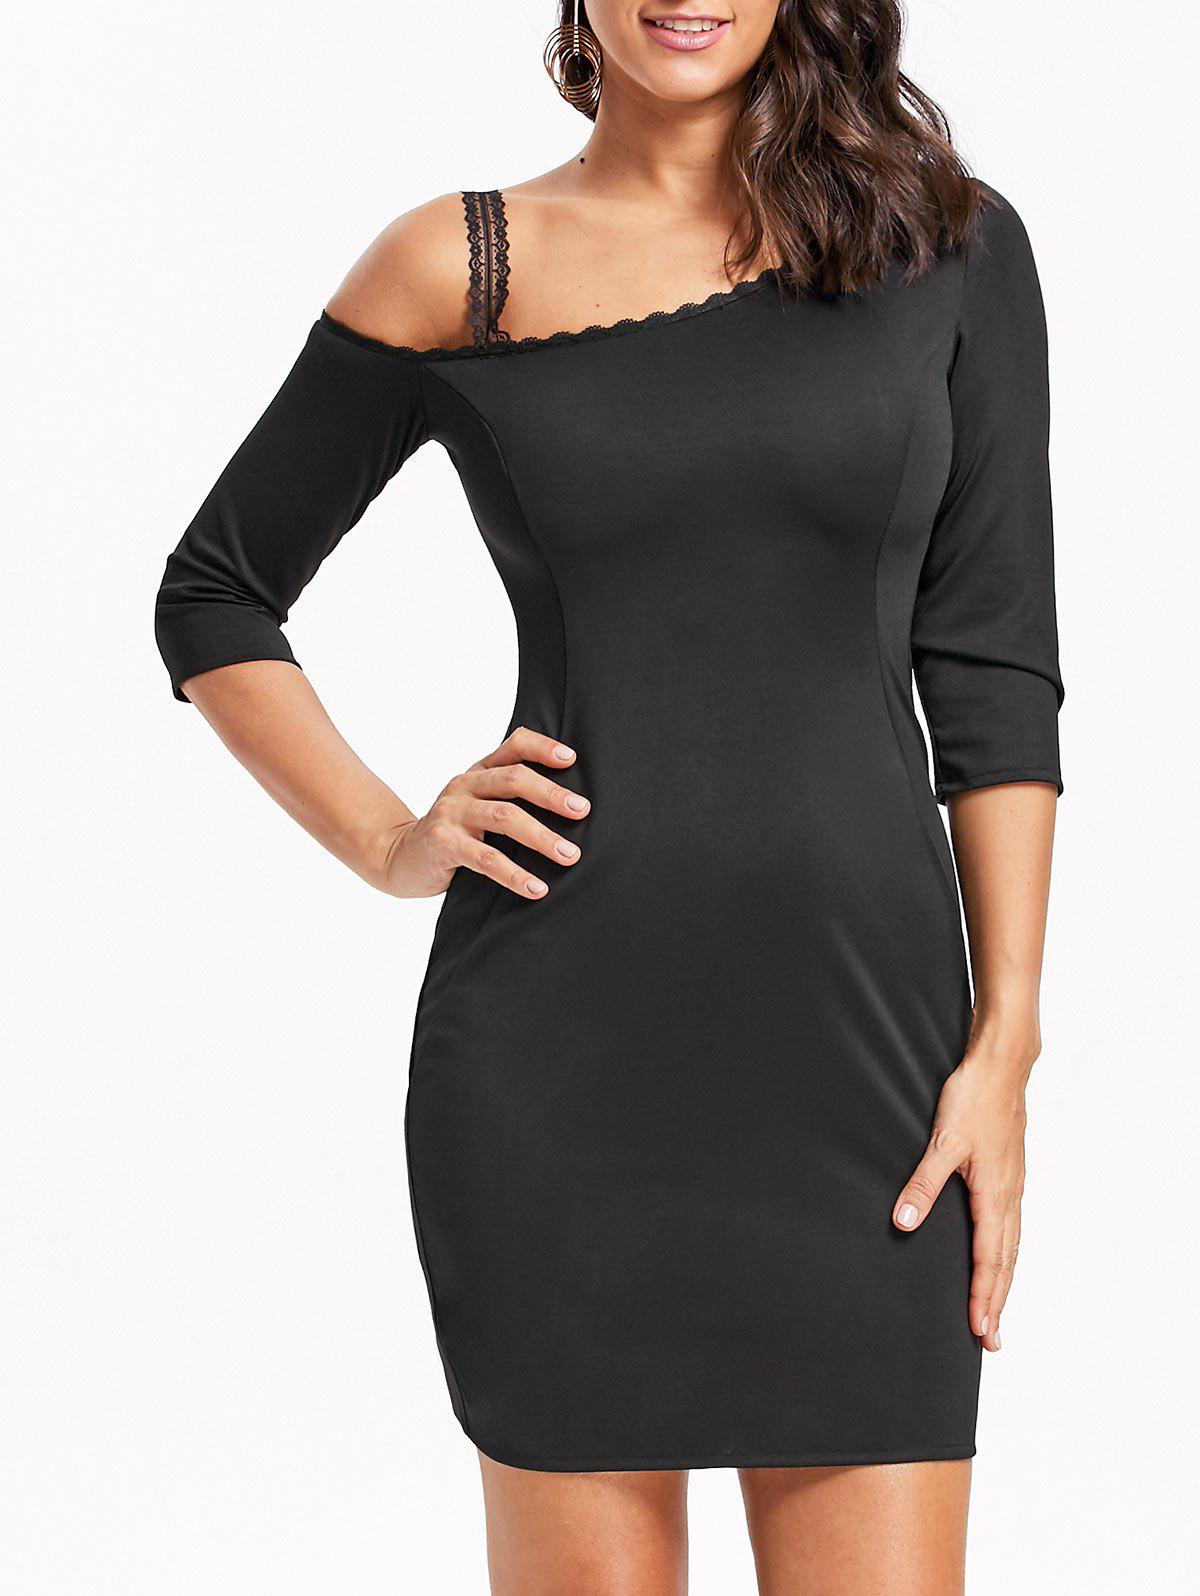 Skew Neck Lace Trim Bodycon Mini Dress - BLACK 2XL